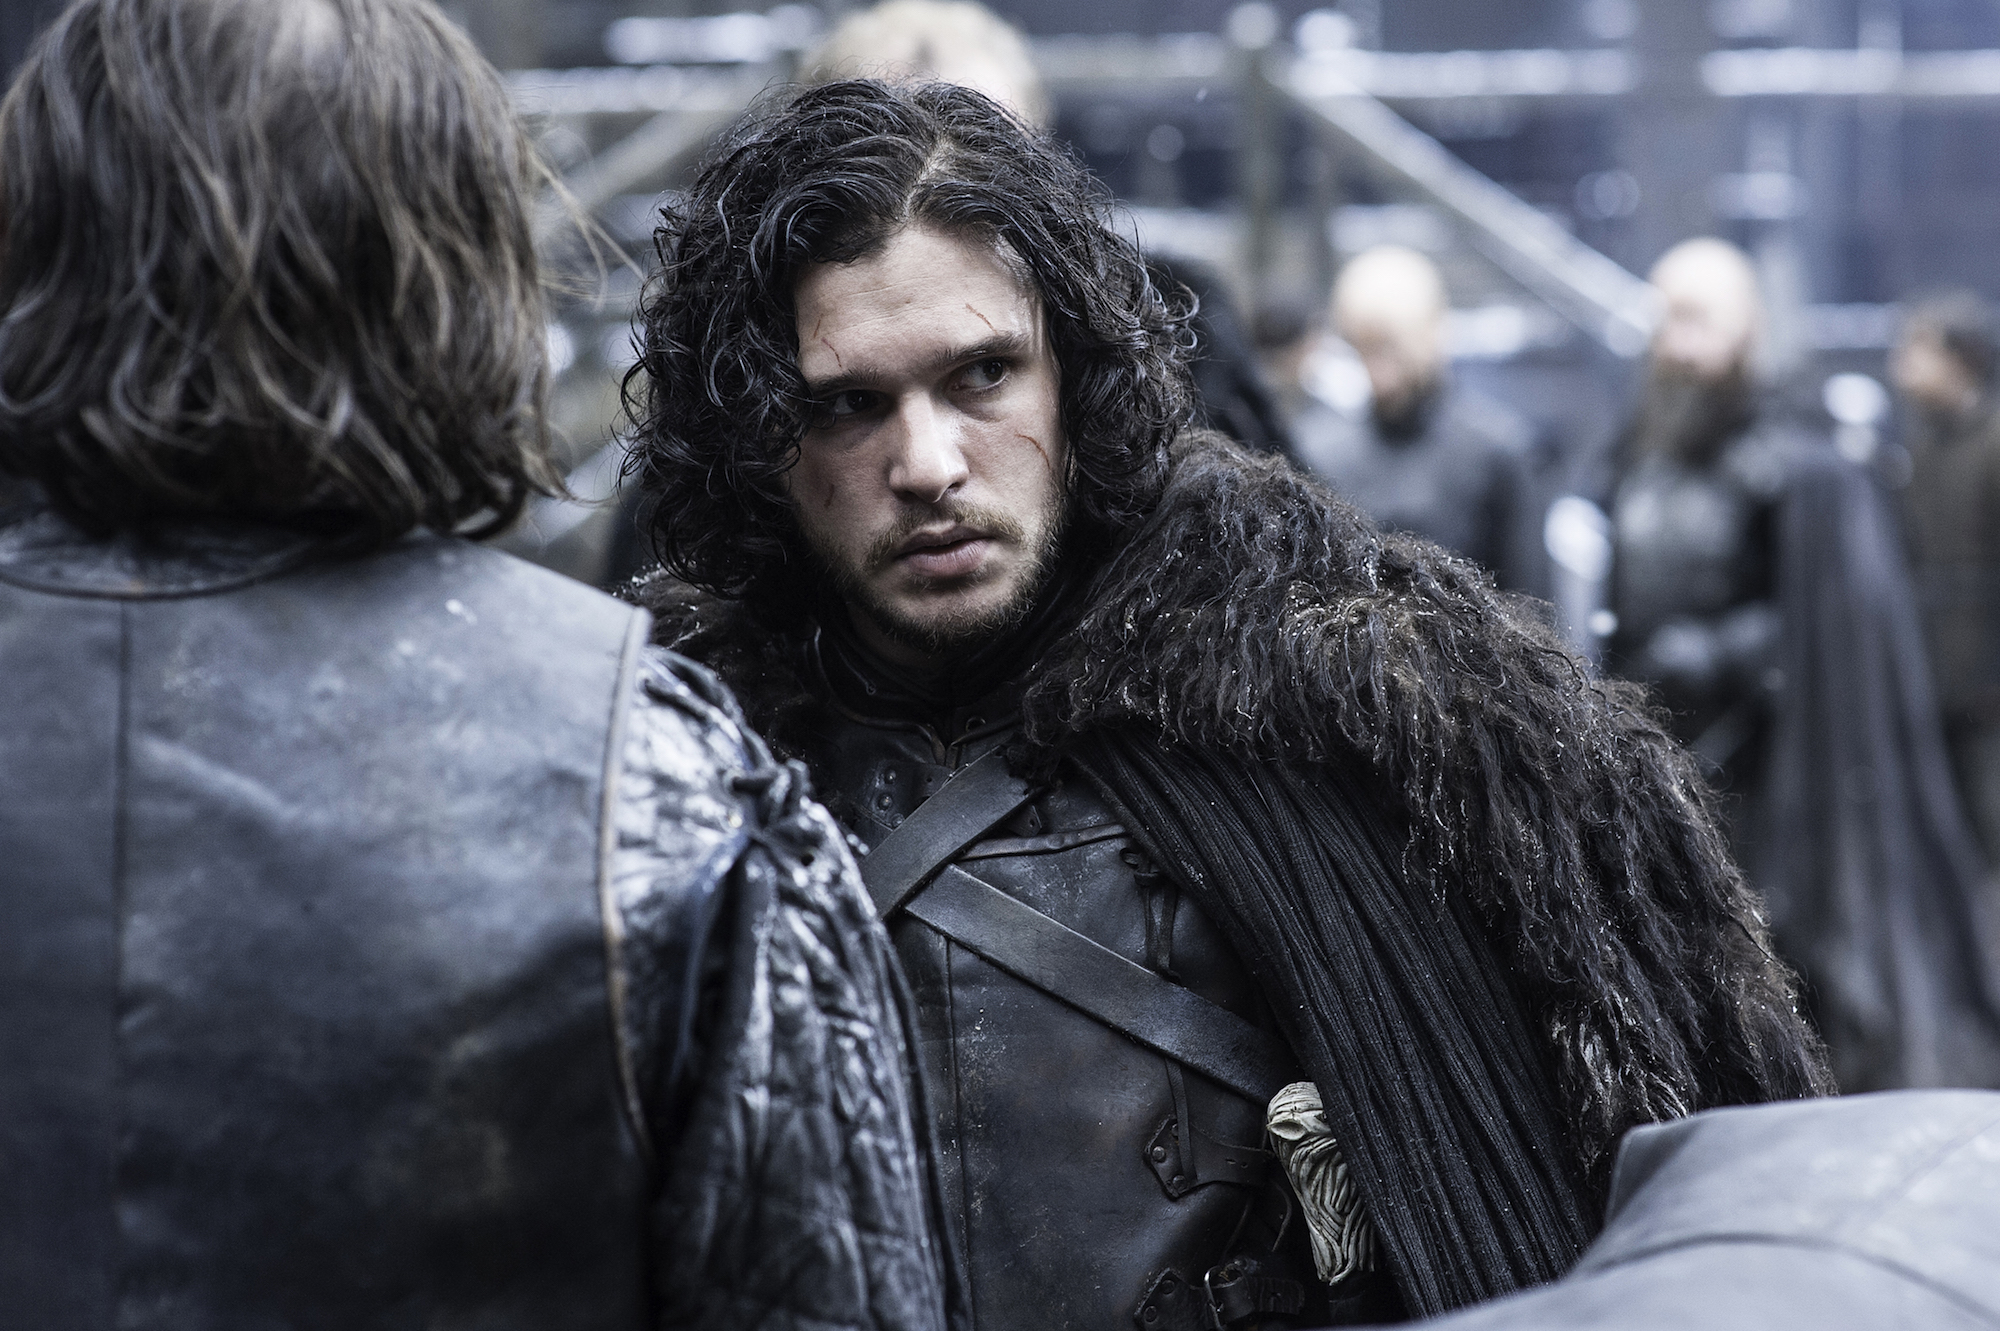 Kit Harington's hair is still long, which is pretty much proof that he'll be back on 'Game of Thrones' (we hope)